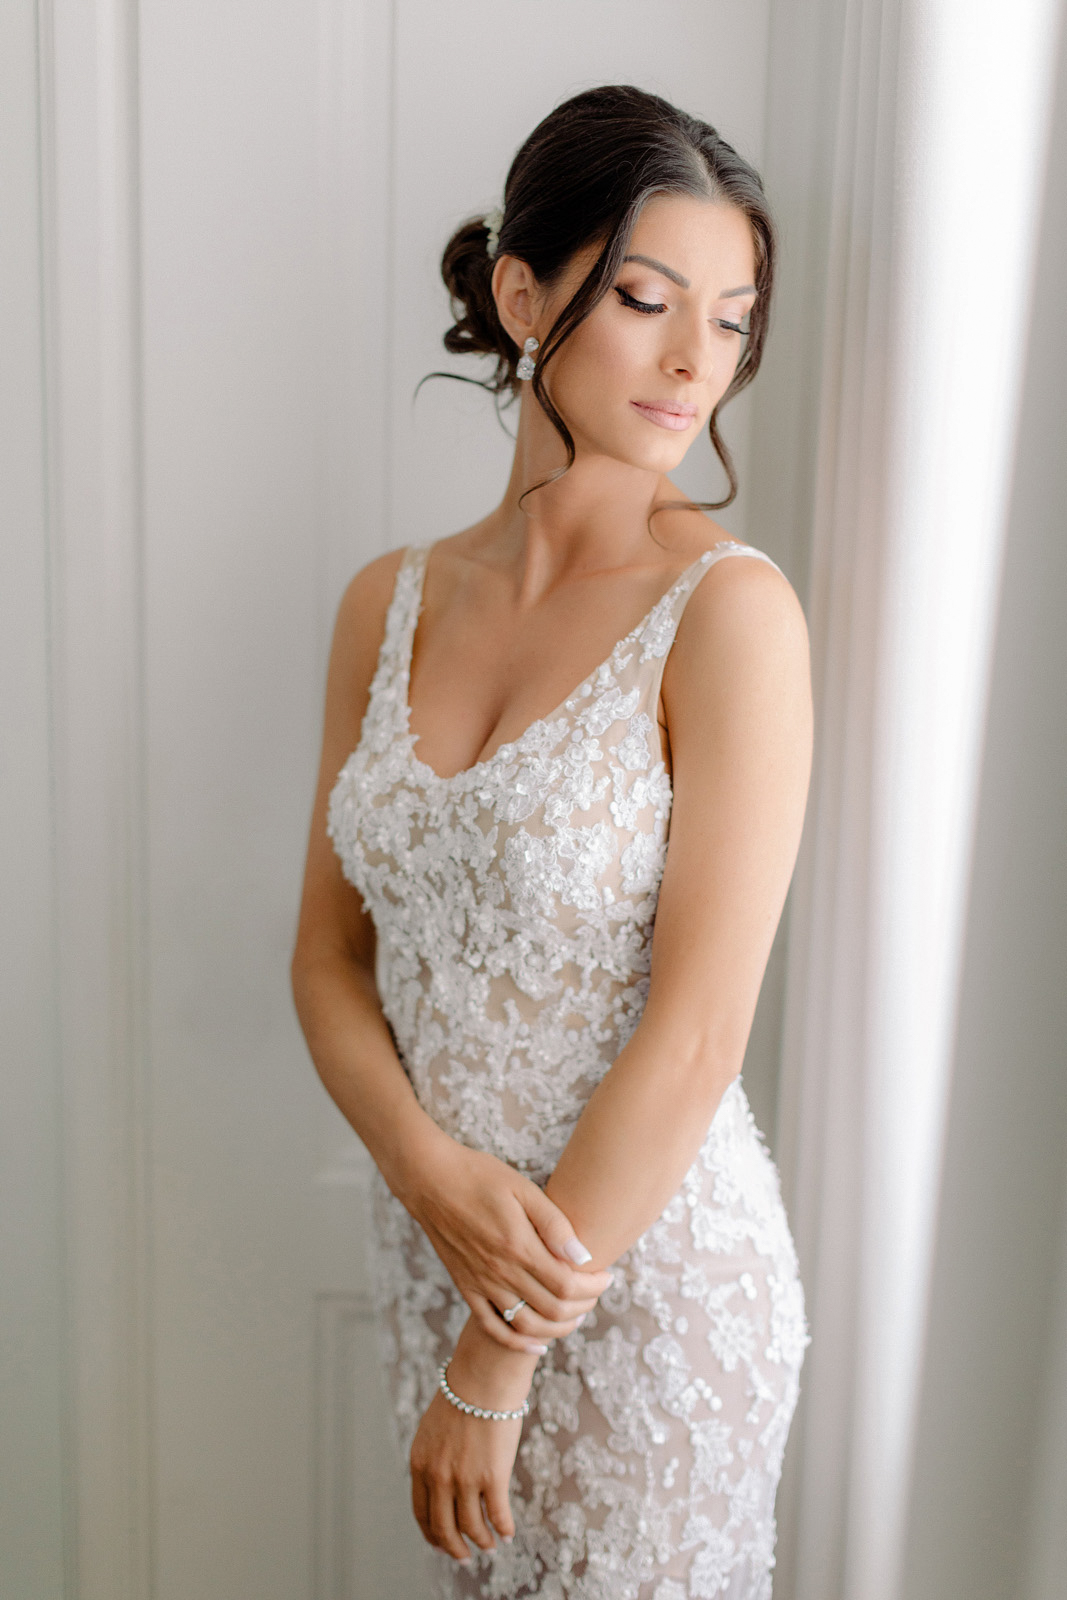 spetses wedding photographer makes portrait of gorgeous bride by the window of Grand Hotel Poseidonion suite